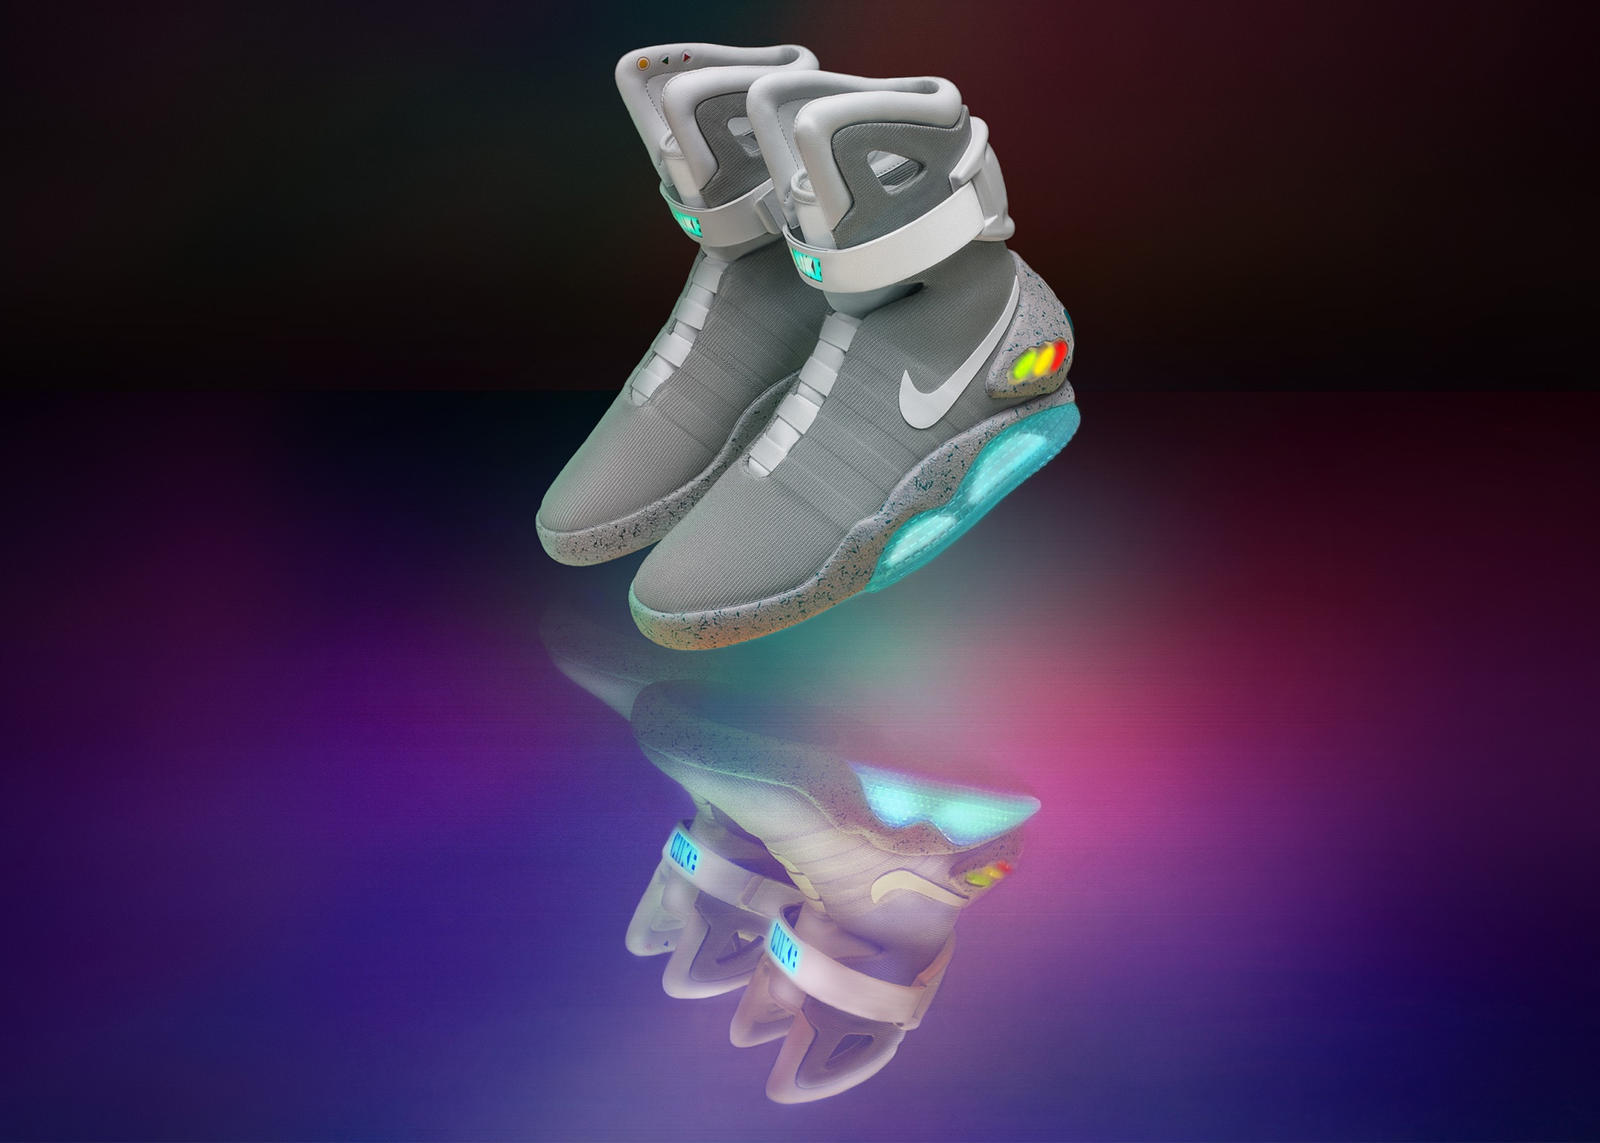 d9fcbecf73a How to Get the 2016 Nike Mag - Nike News